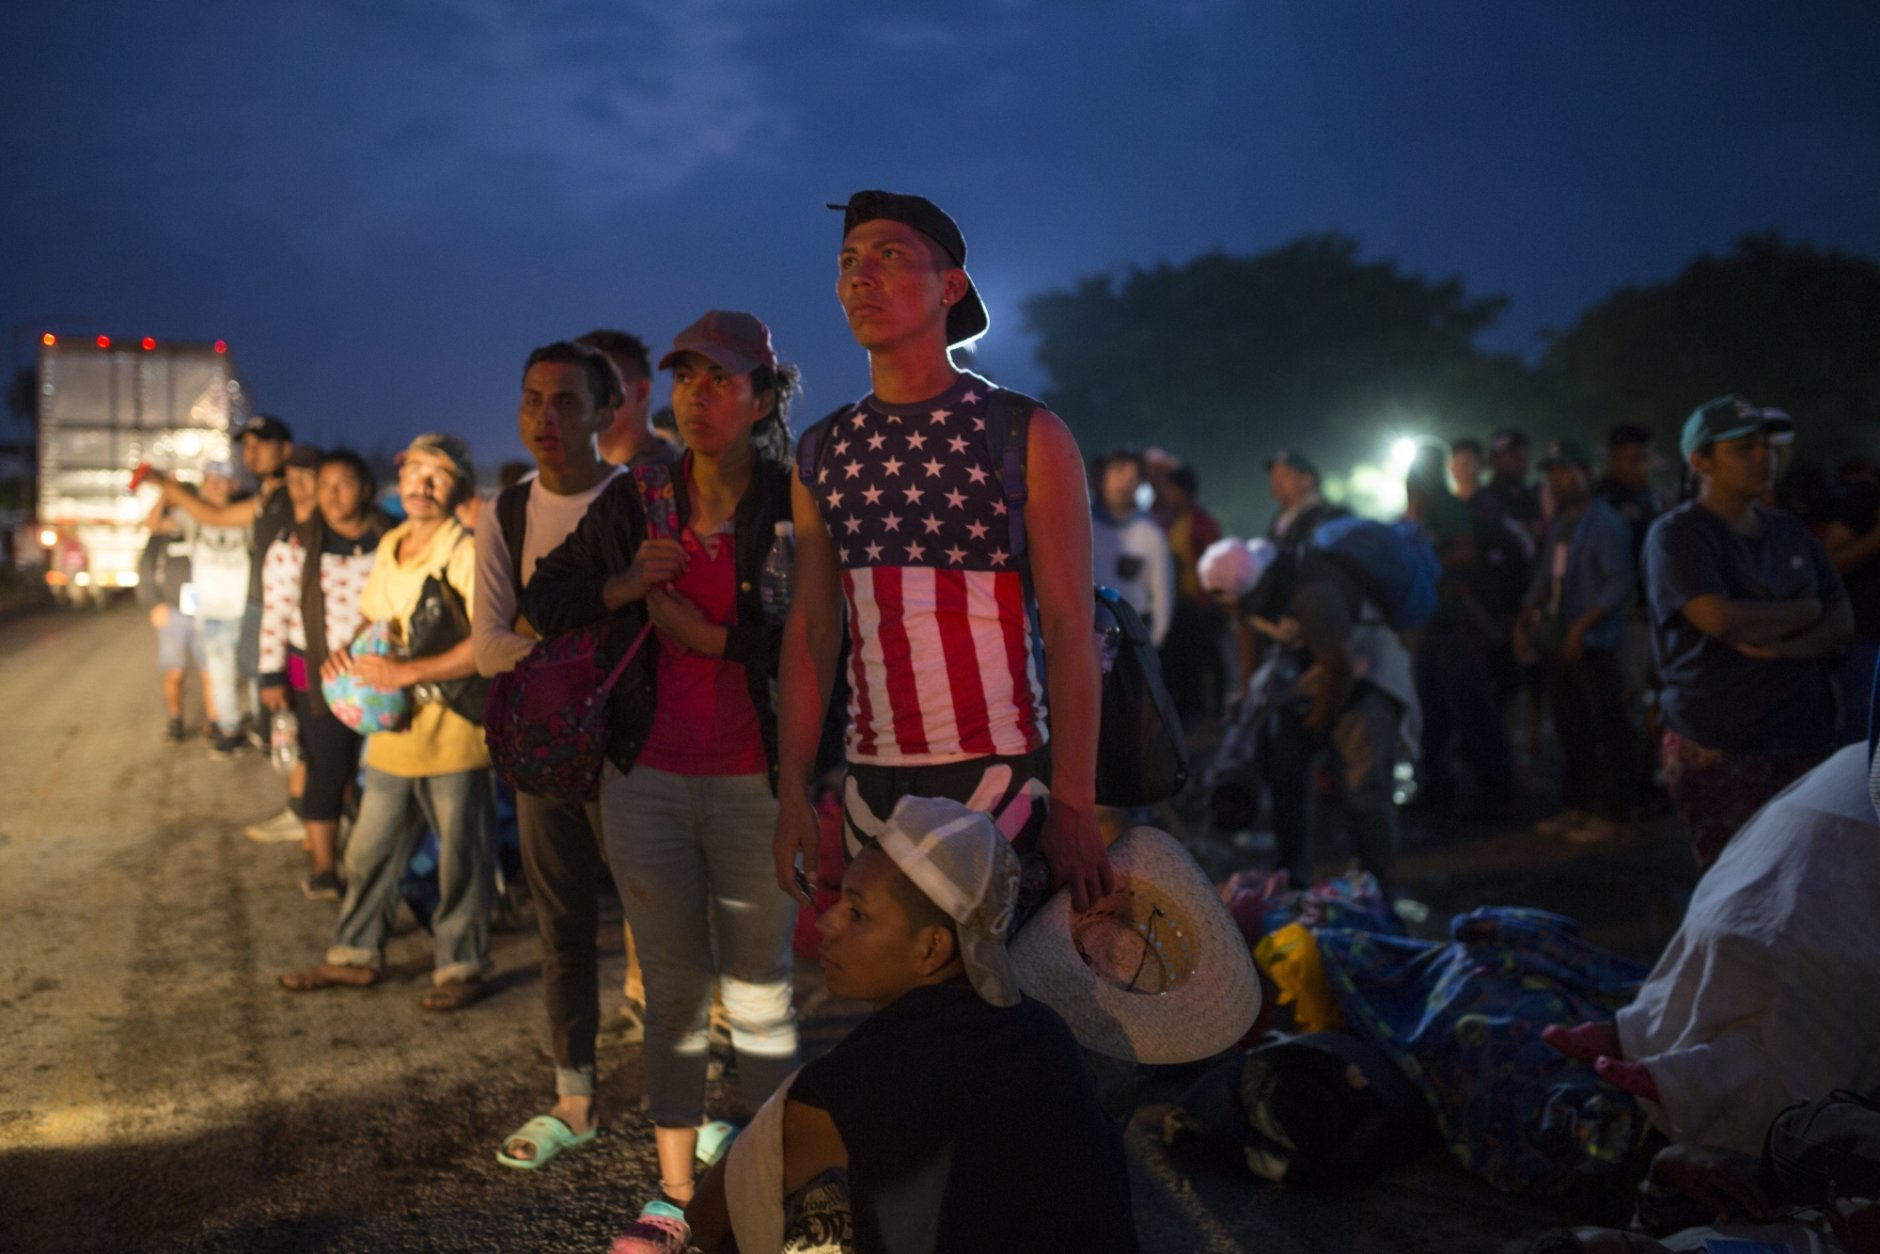 Central American migrants, part of the caravan hoping to reach the U.S. border, wait for a ride in Donaji, Oaxaca state, Mexico, Friday, Nov. 2, 2018. The migrants had already made a grueling 40-mile (65-kilometer) trek from Juchitan, Oaxaca, on Thursday, after they failed to get the bus transportation they had hoped for. But hitching rides allowed them to get to Donaji early, and some headed on to a town even further north, Sayula. (AP Photo/Rodrigo Abd)